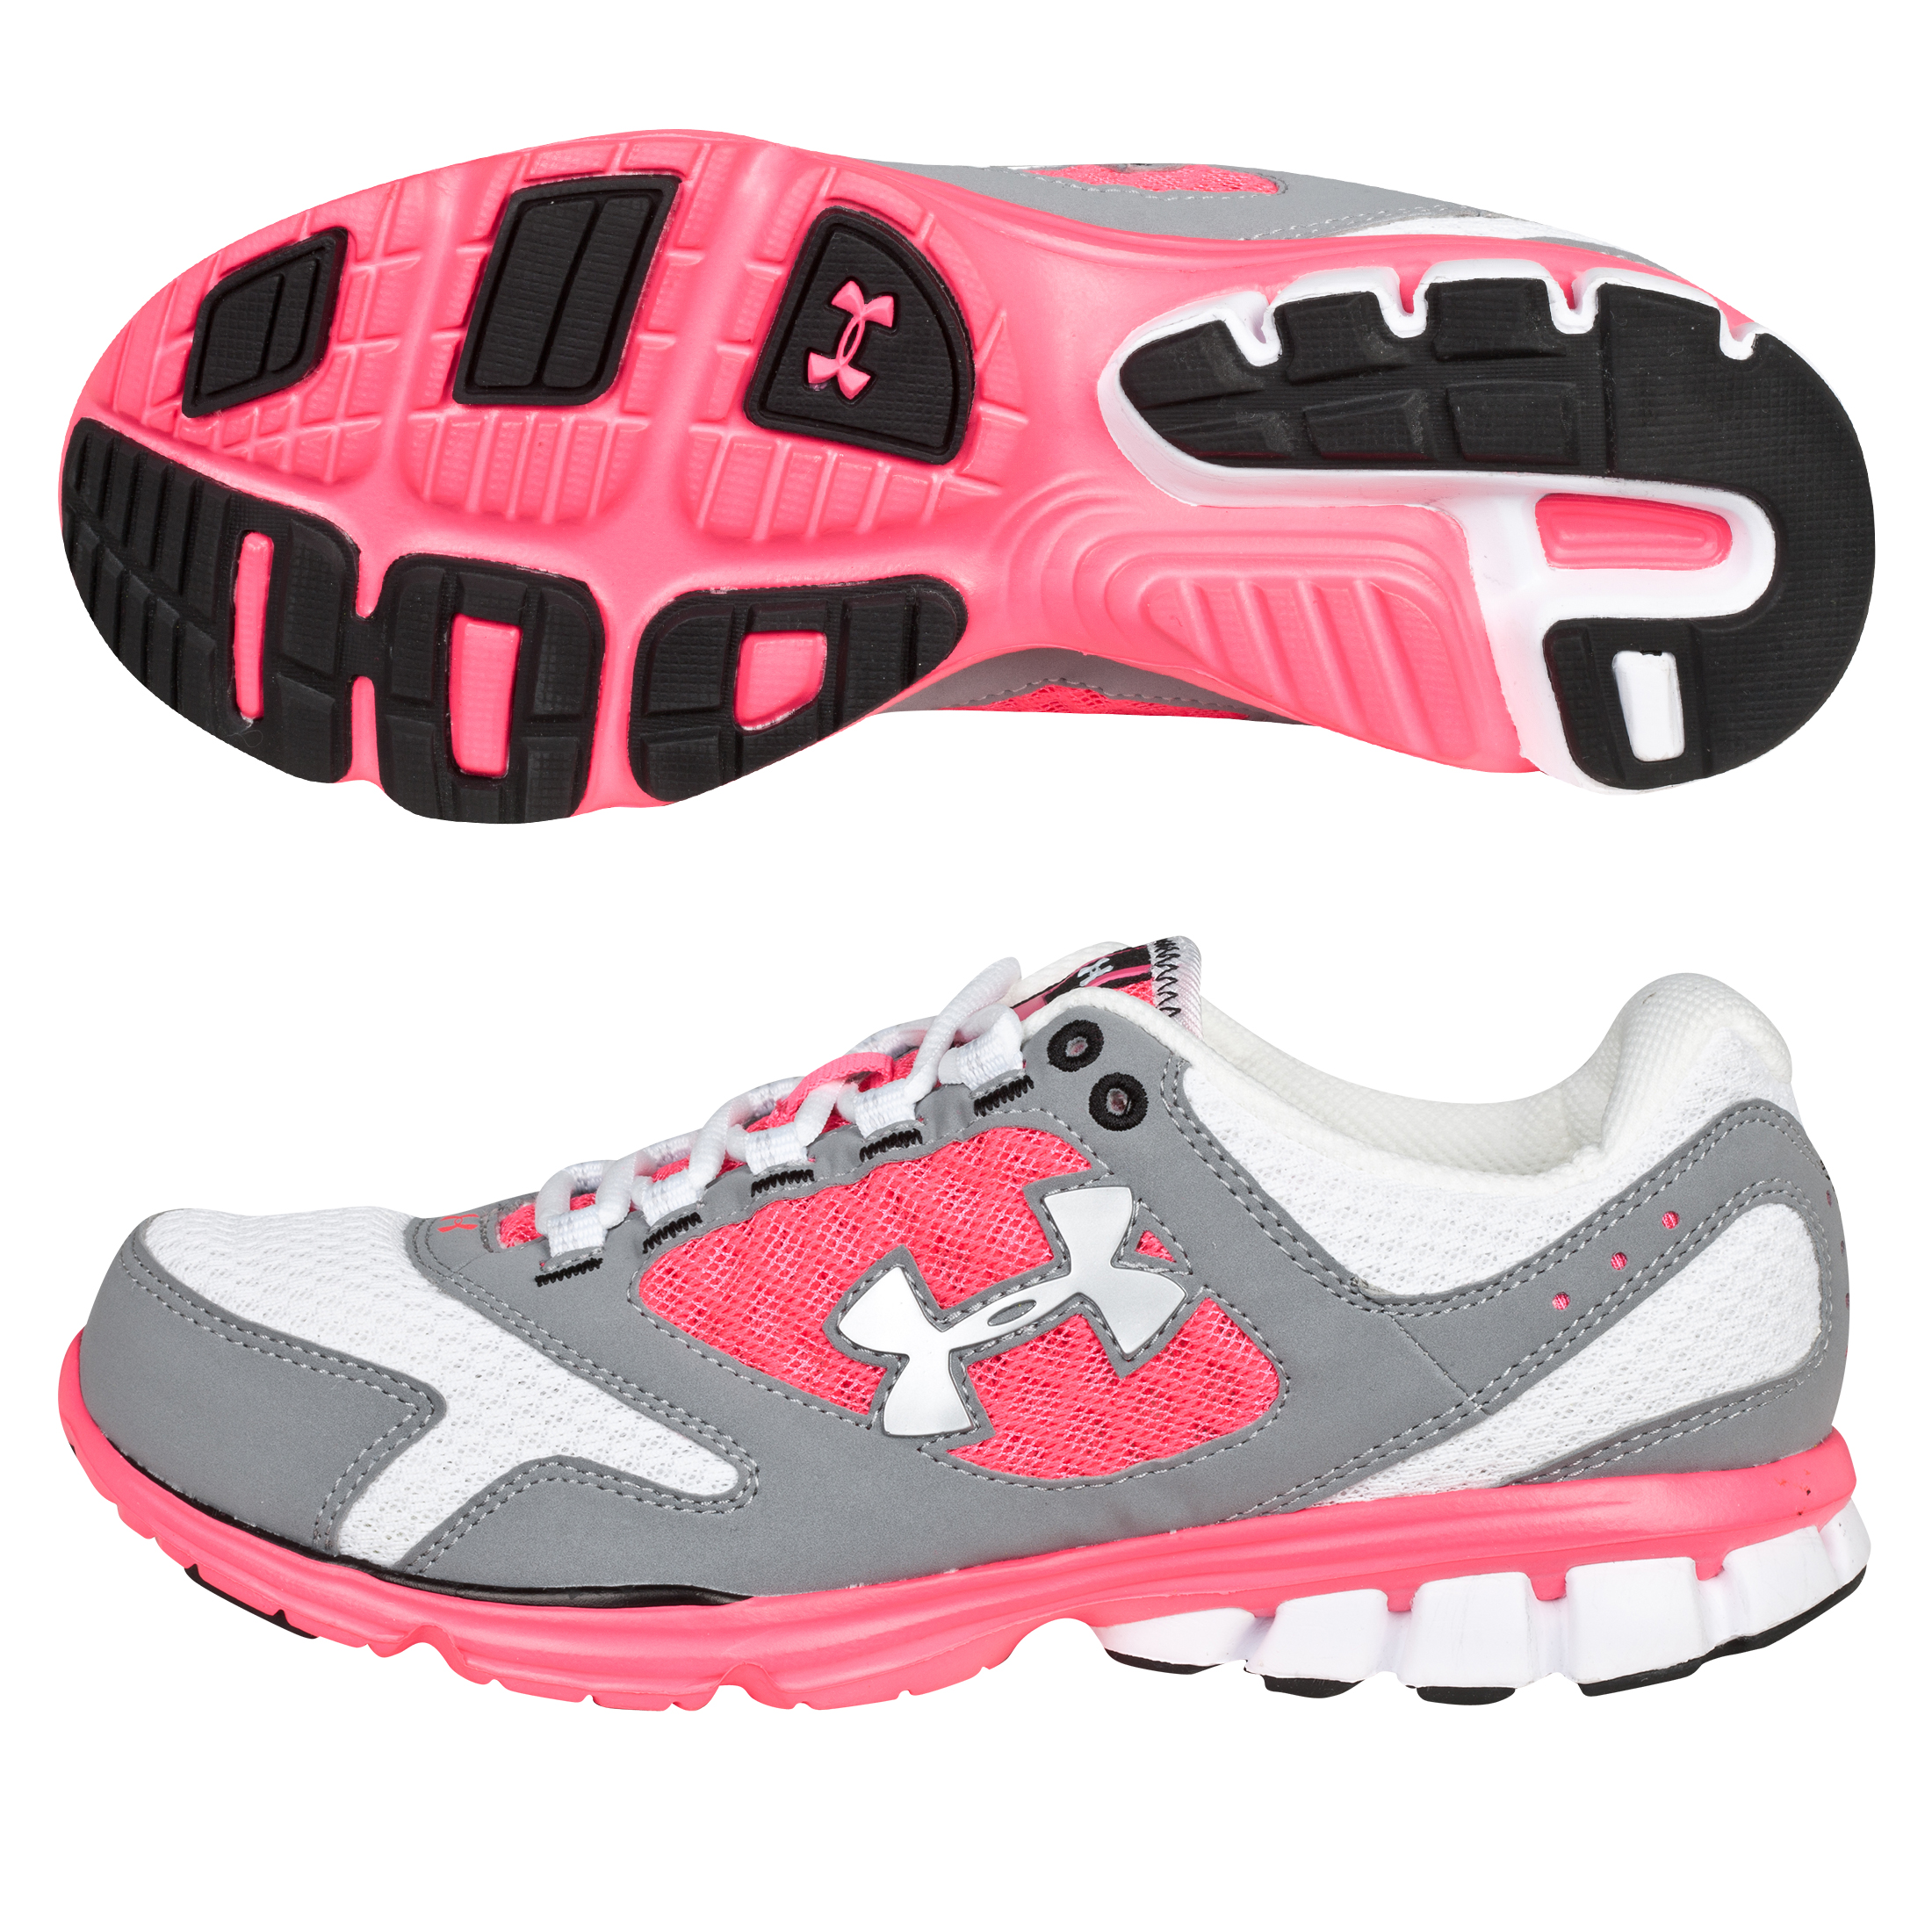 Under Armour Womens Assert II Trainer - White/Pink